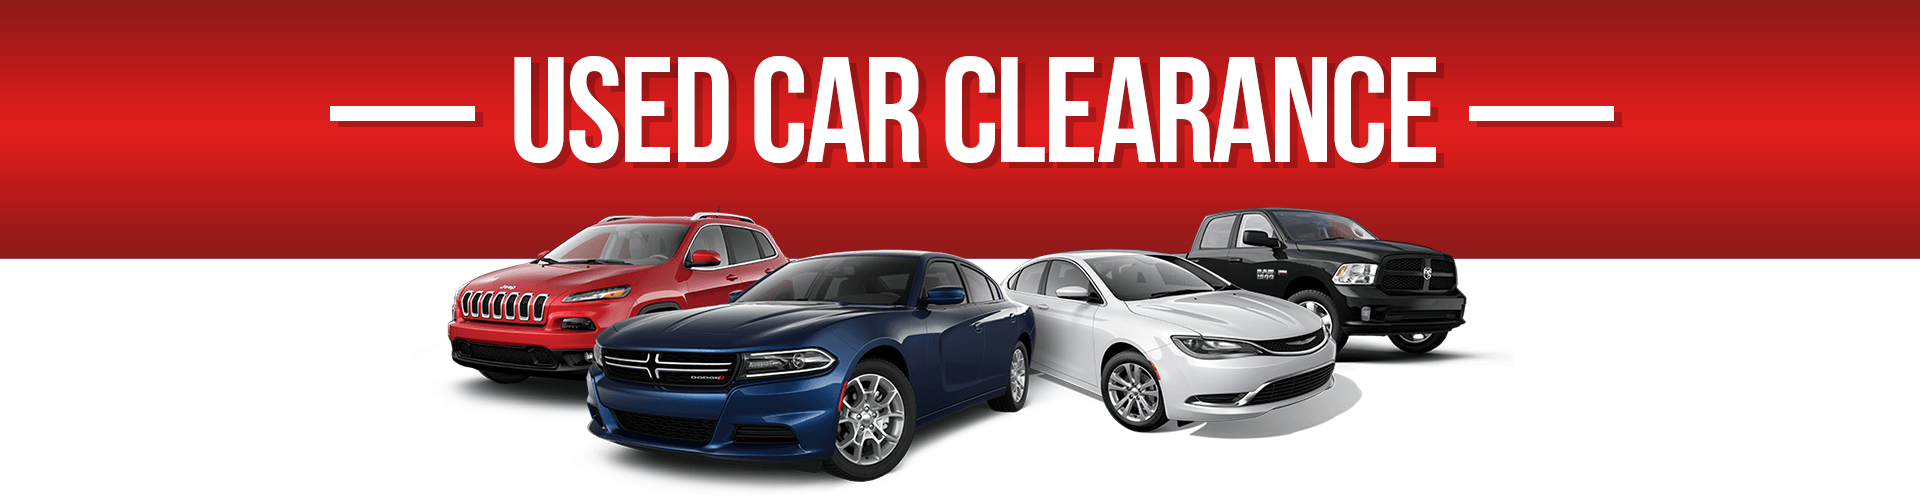 Used Car Clearance @ Forest City Dodge in London Ontario